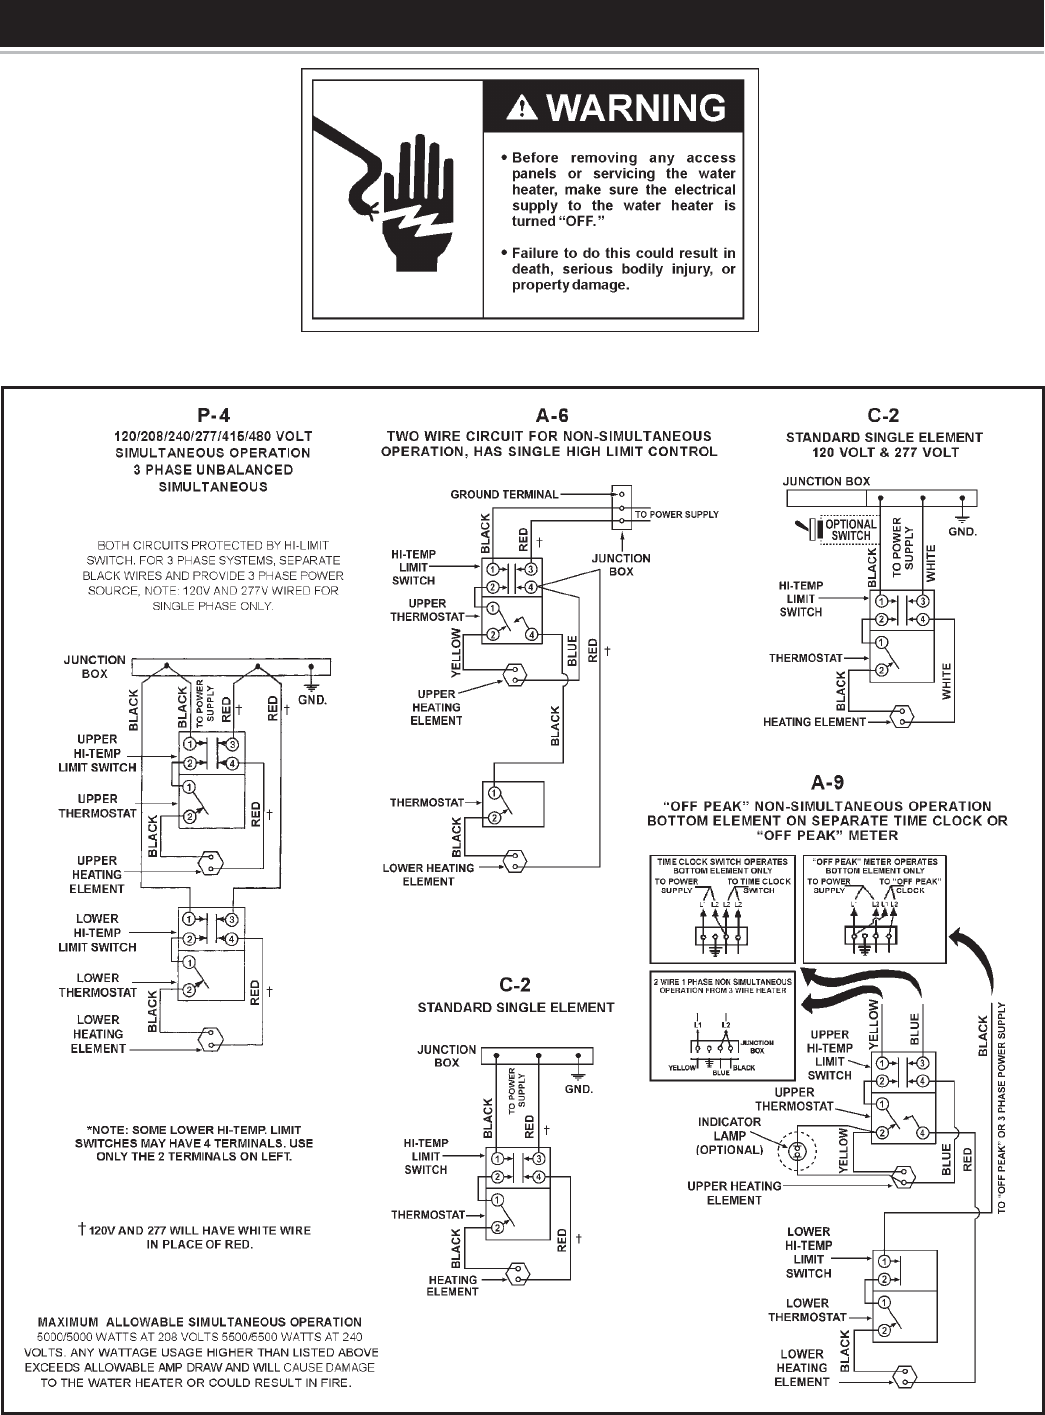 3509a988 74d5 459b aaef 95ebb87e3bd4 bgb ao smith wiring diagram 3 phase tankless water heater wiring diagram at virtualis.co